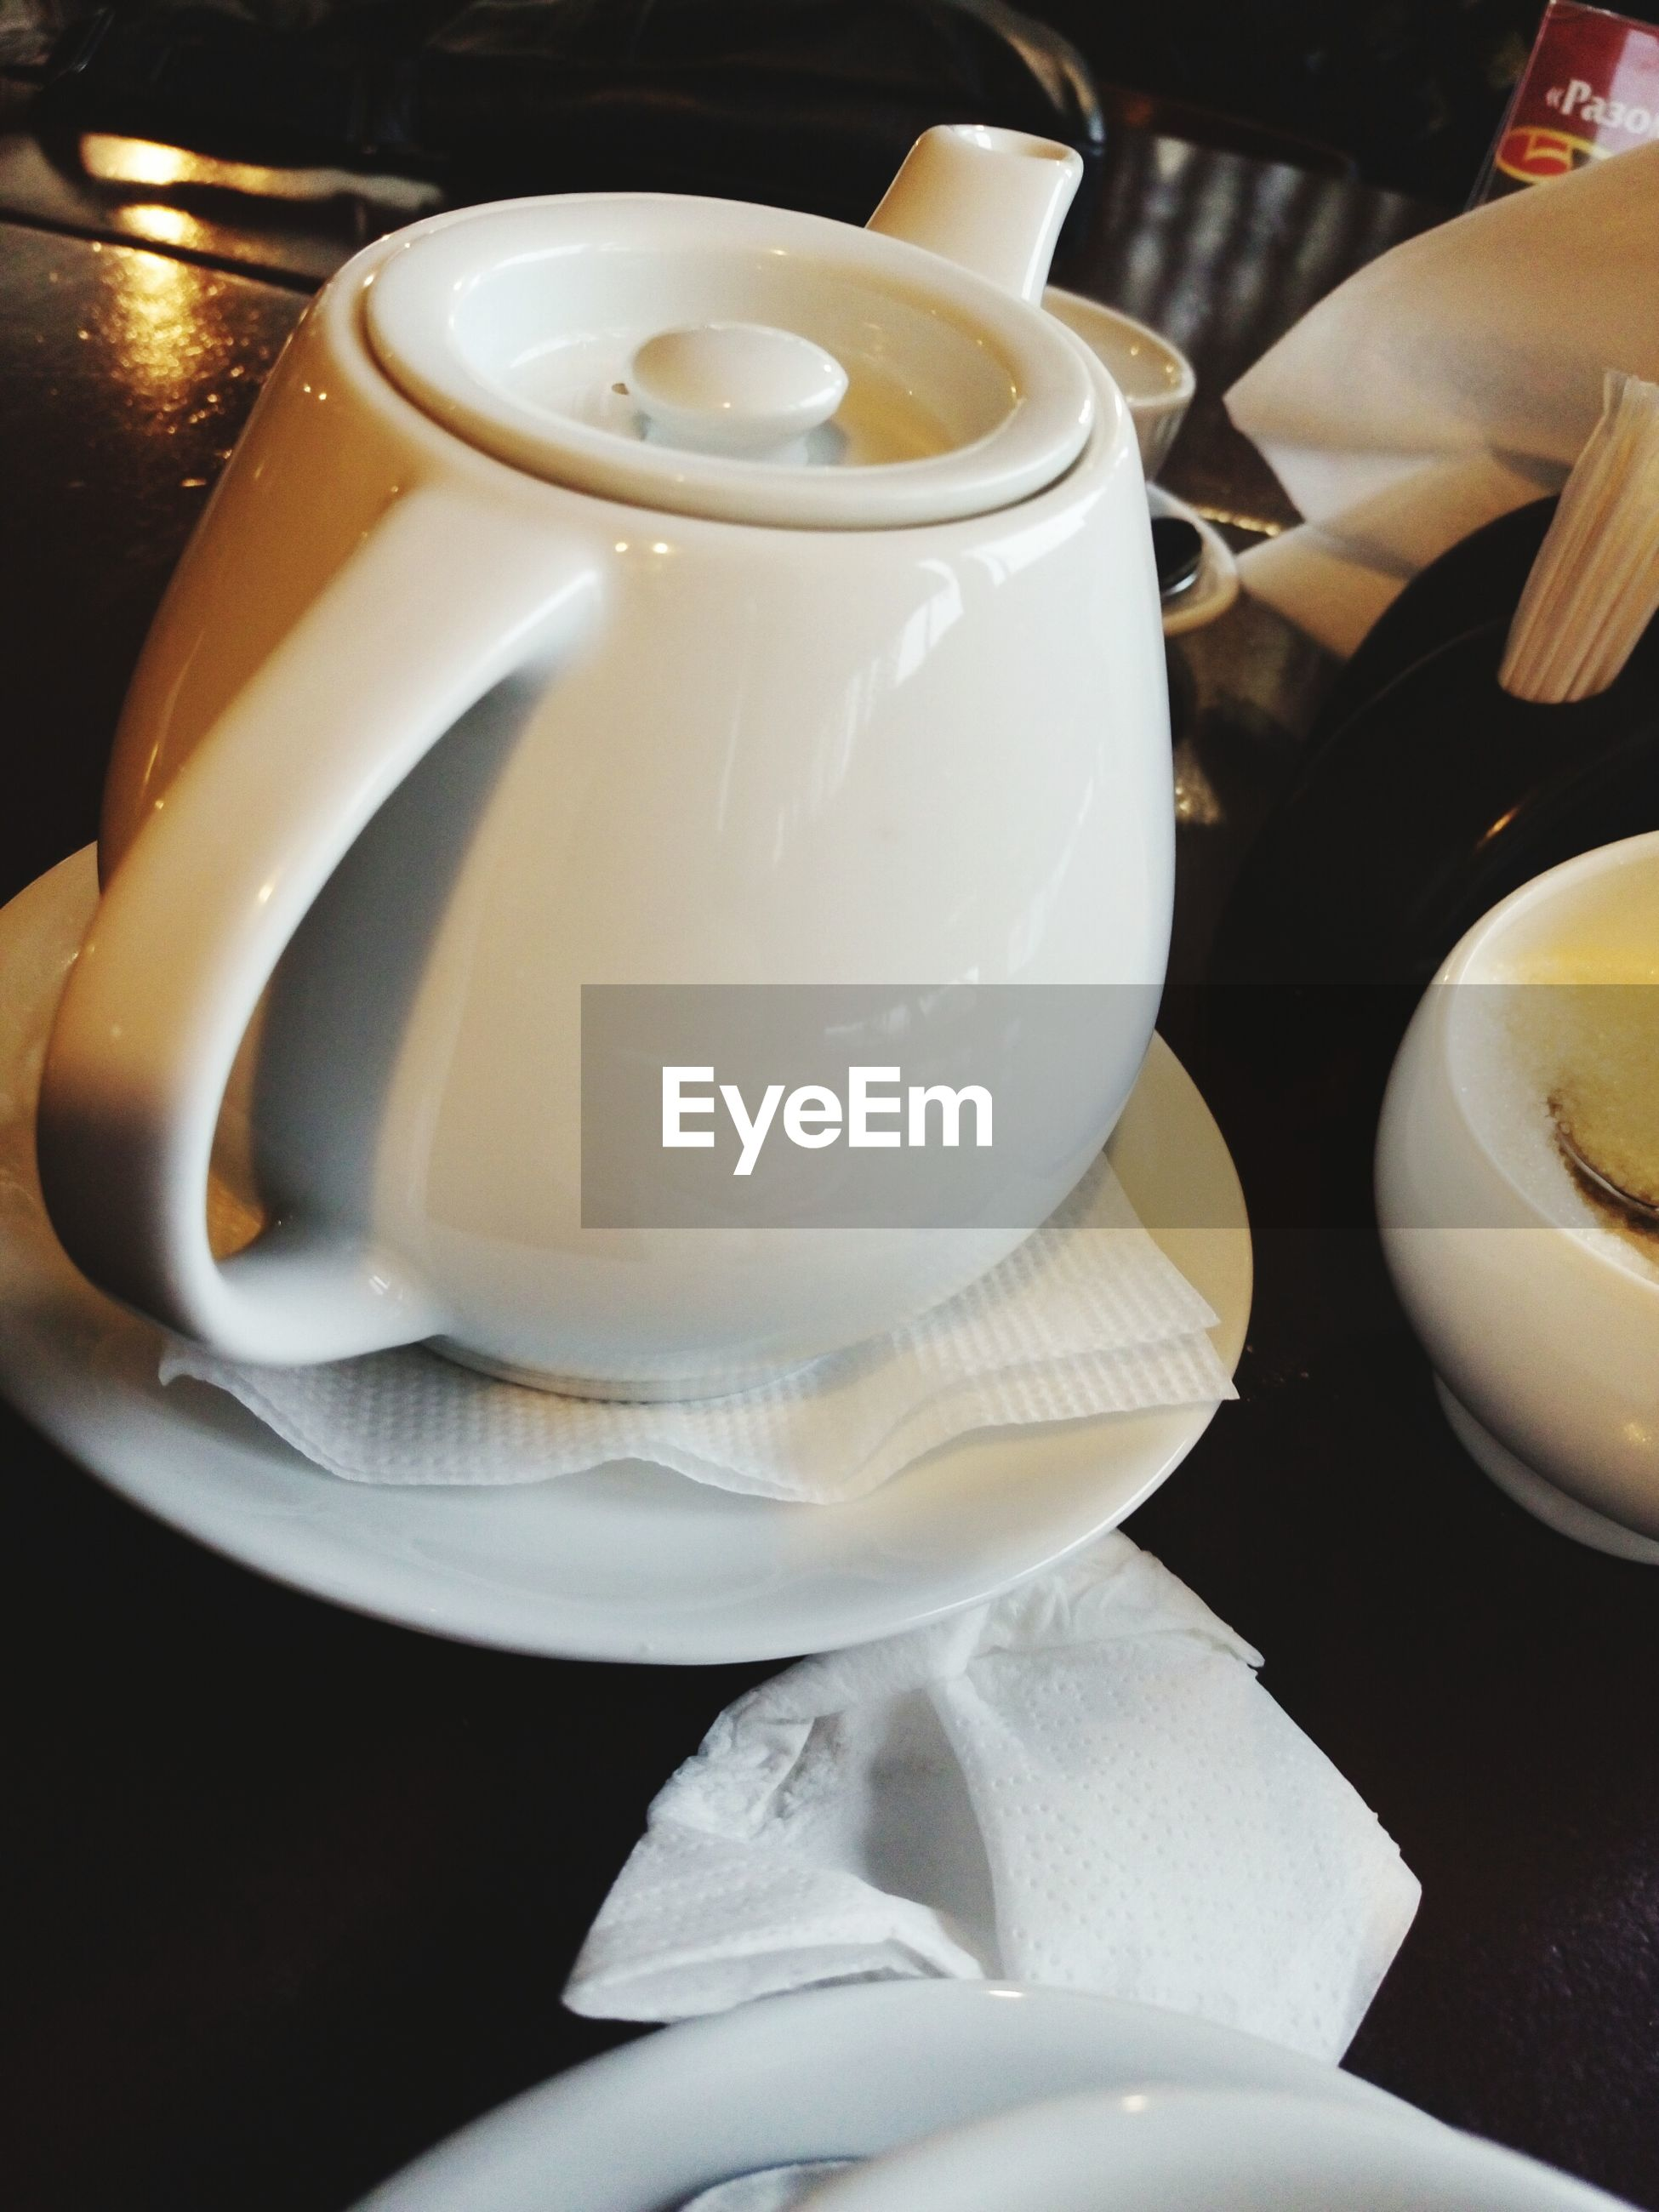 indoors, food and drink, still life, table, freshness, coffee cup, close-up, high angle view, drink, refreshment, plate, spoon, coffee - drink, white color, saucer, food, cup, no people, coffee, focus on foreground